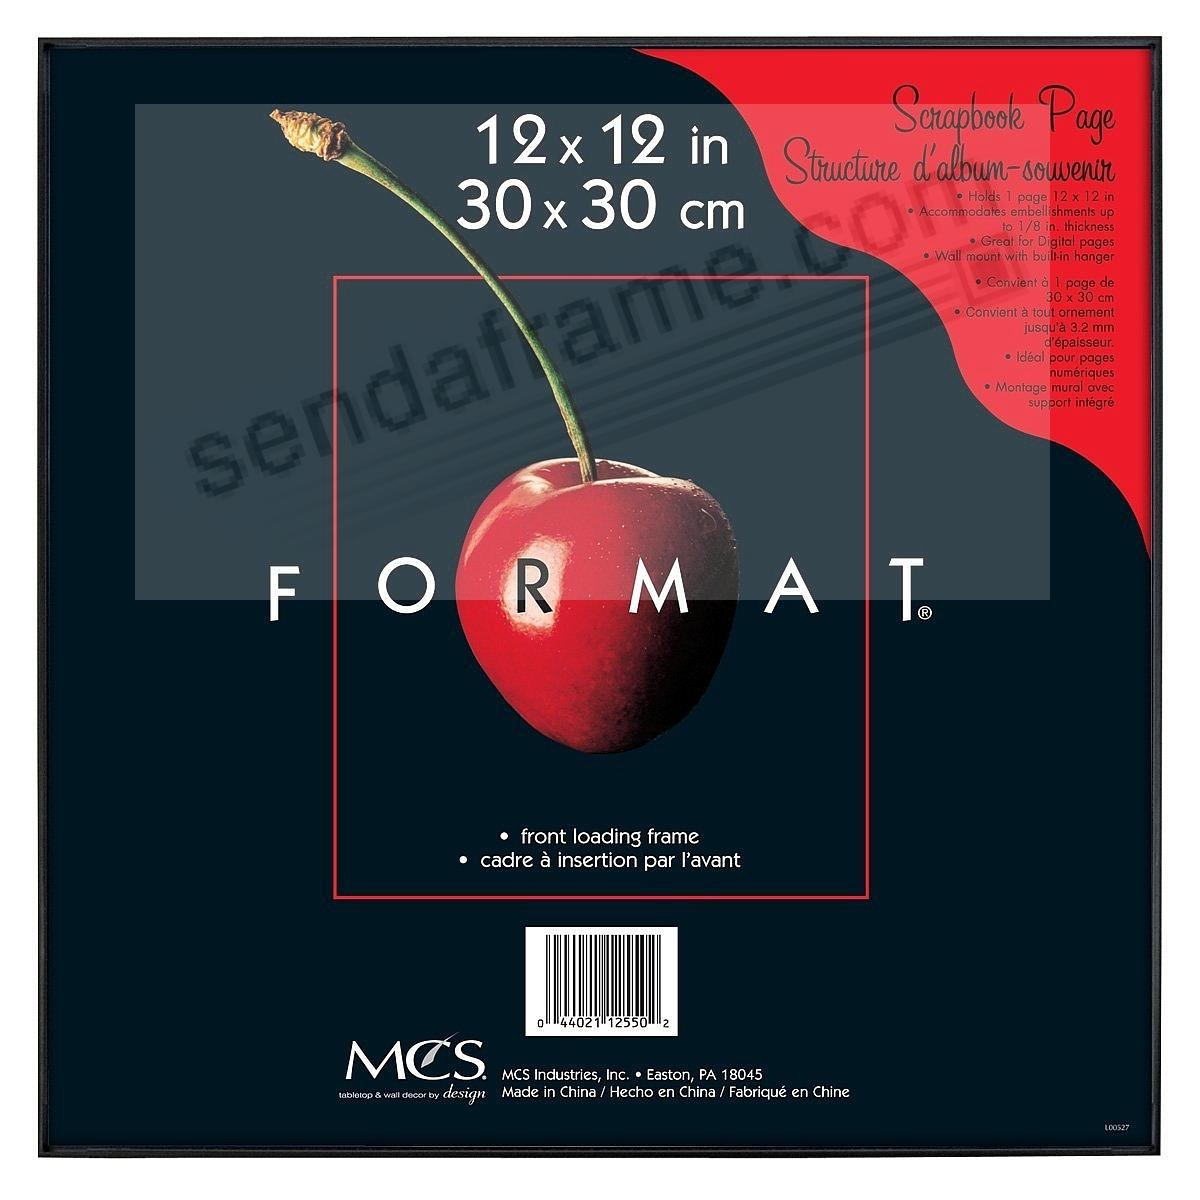 The ORIGINAL FORMAT FRONT-LOAD Black ABS document/print 12x12 Frame